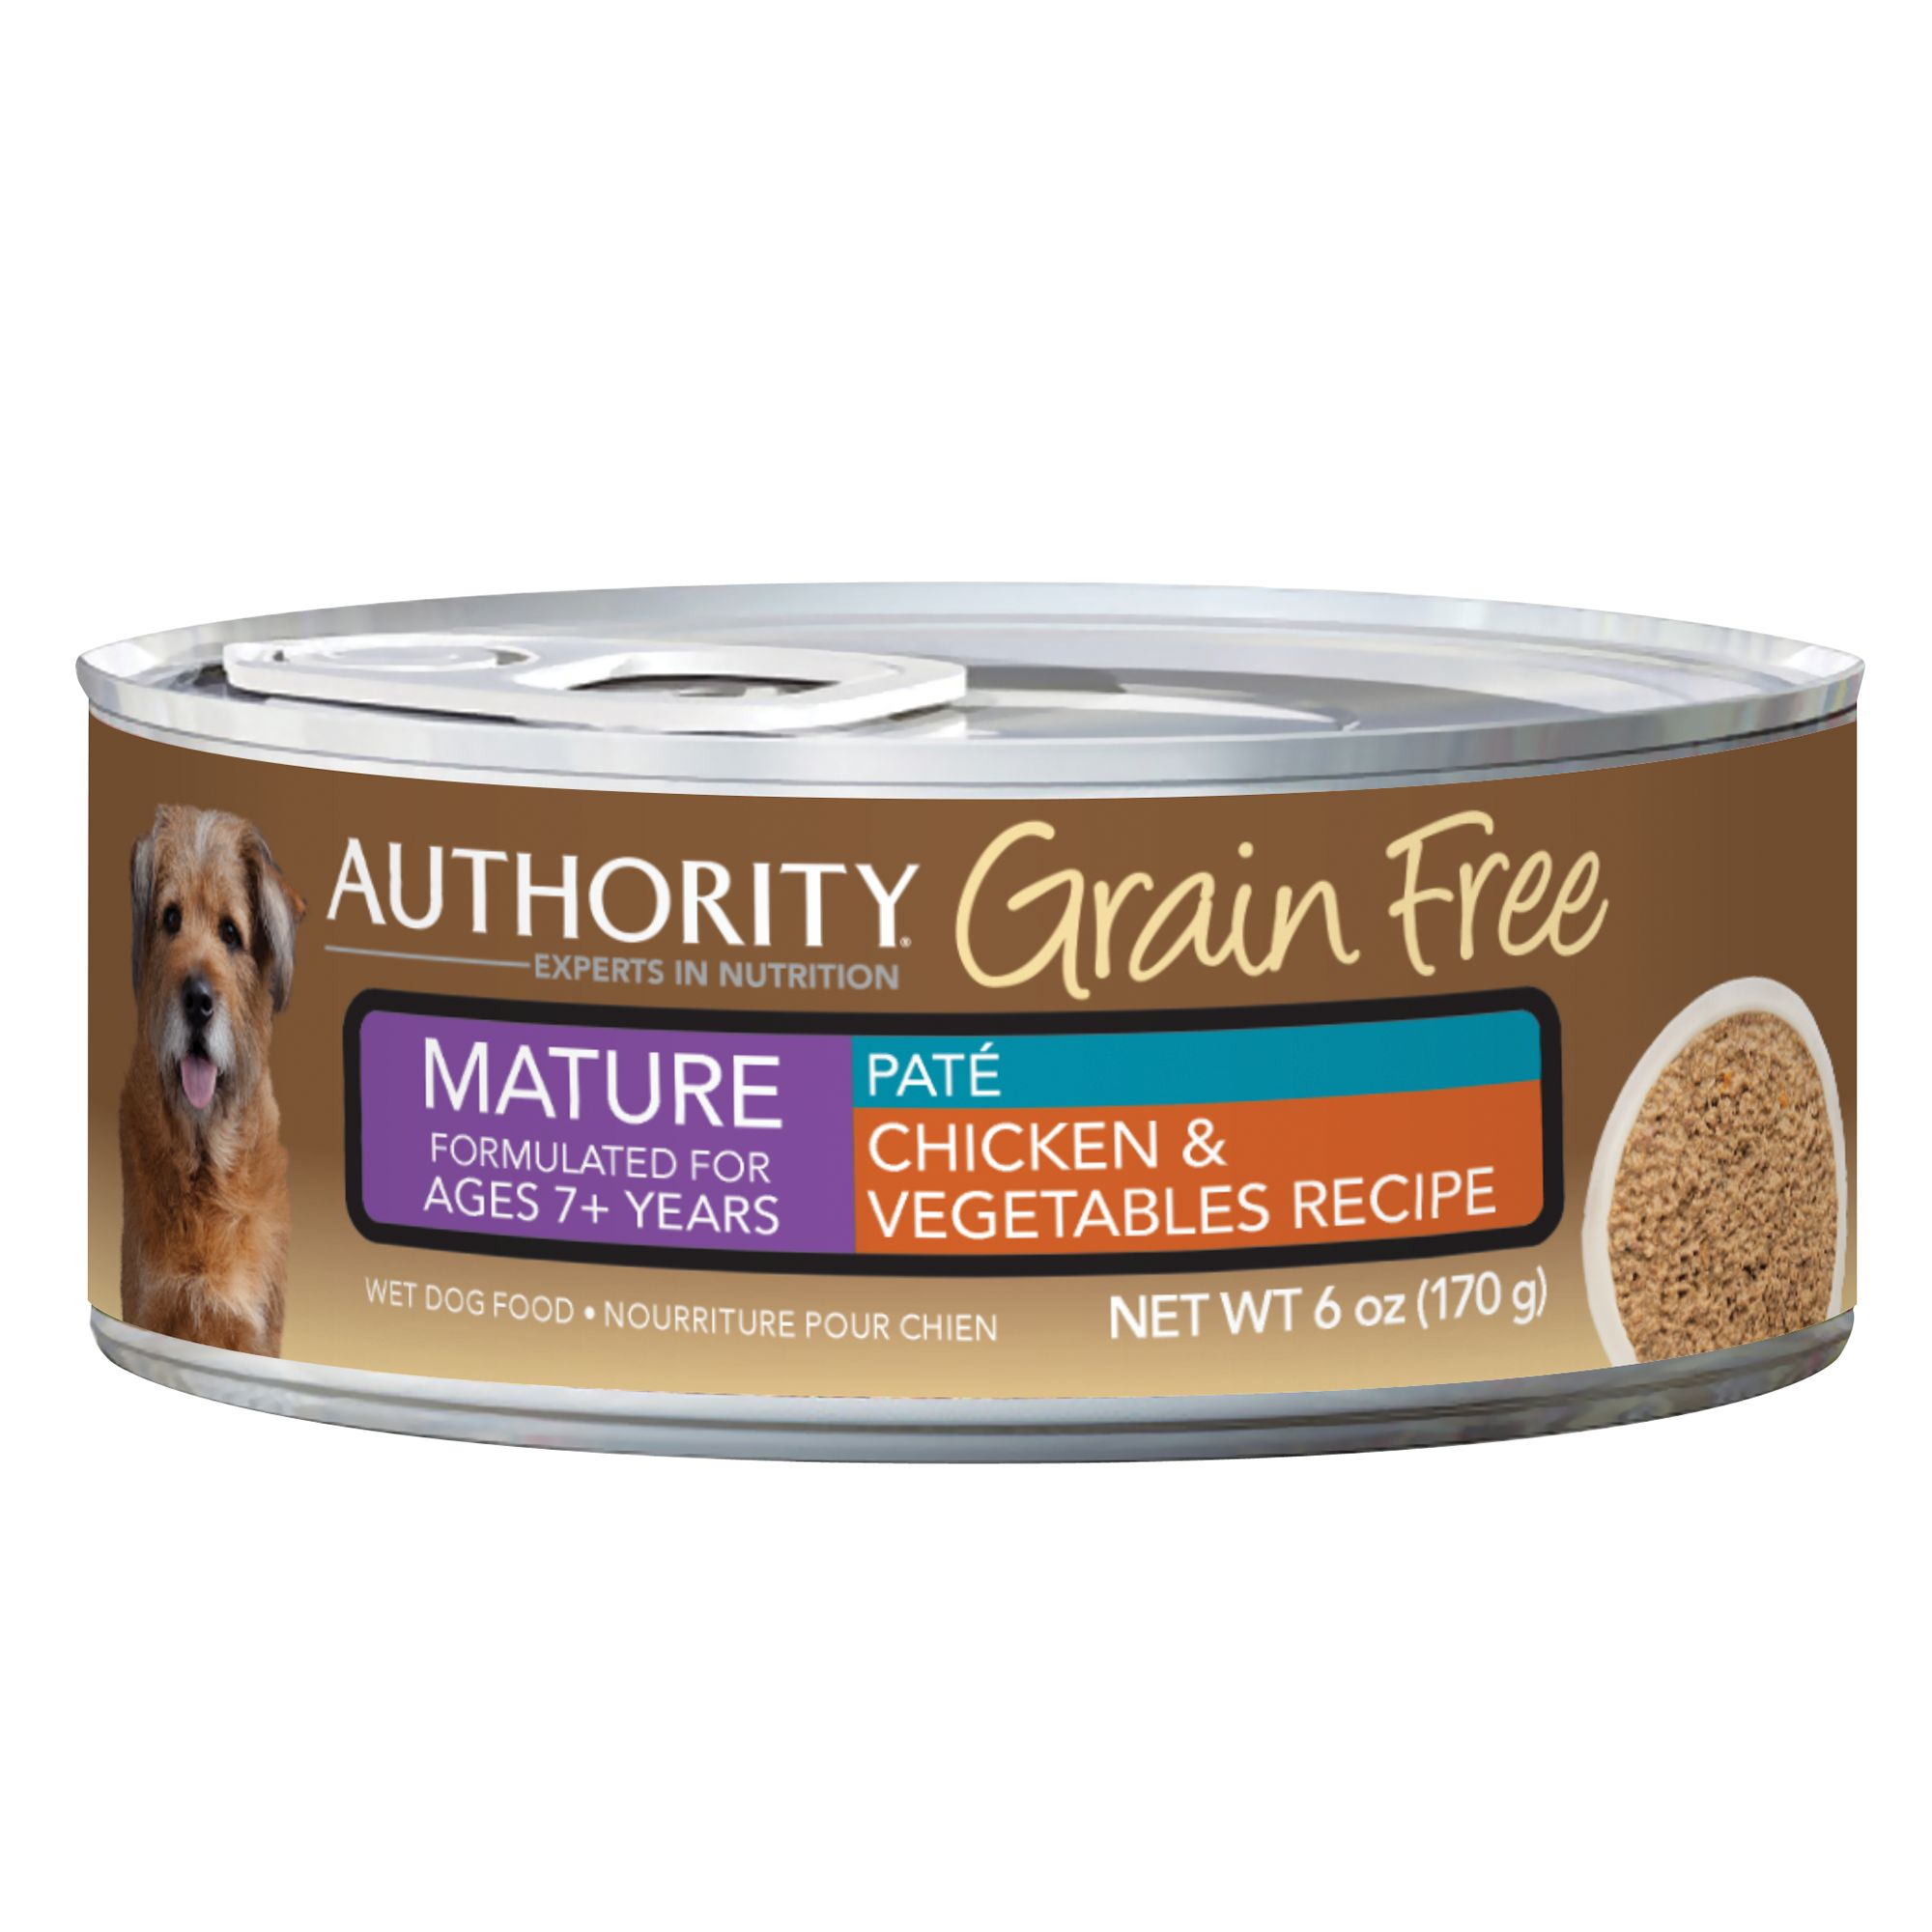 Authority® Grain Free Mature Dog Food - Chicken and Vegetables size: 6 Oz